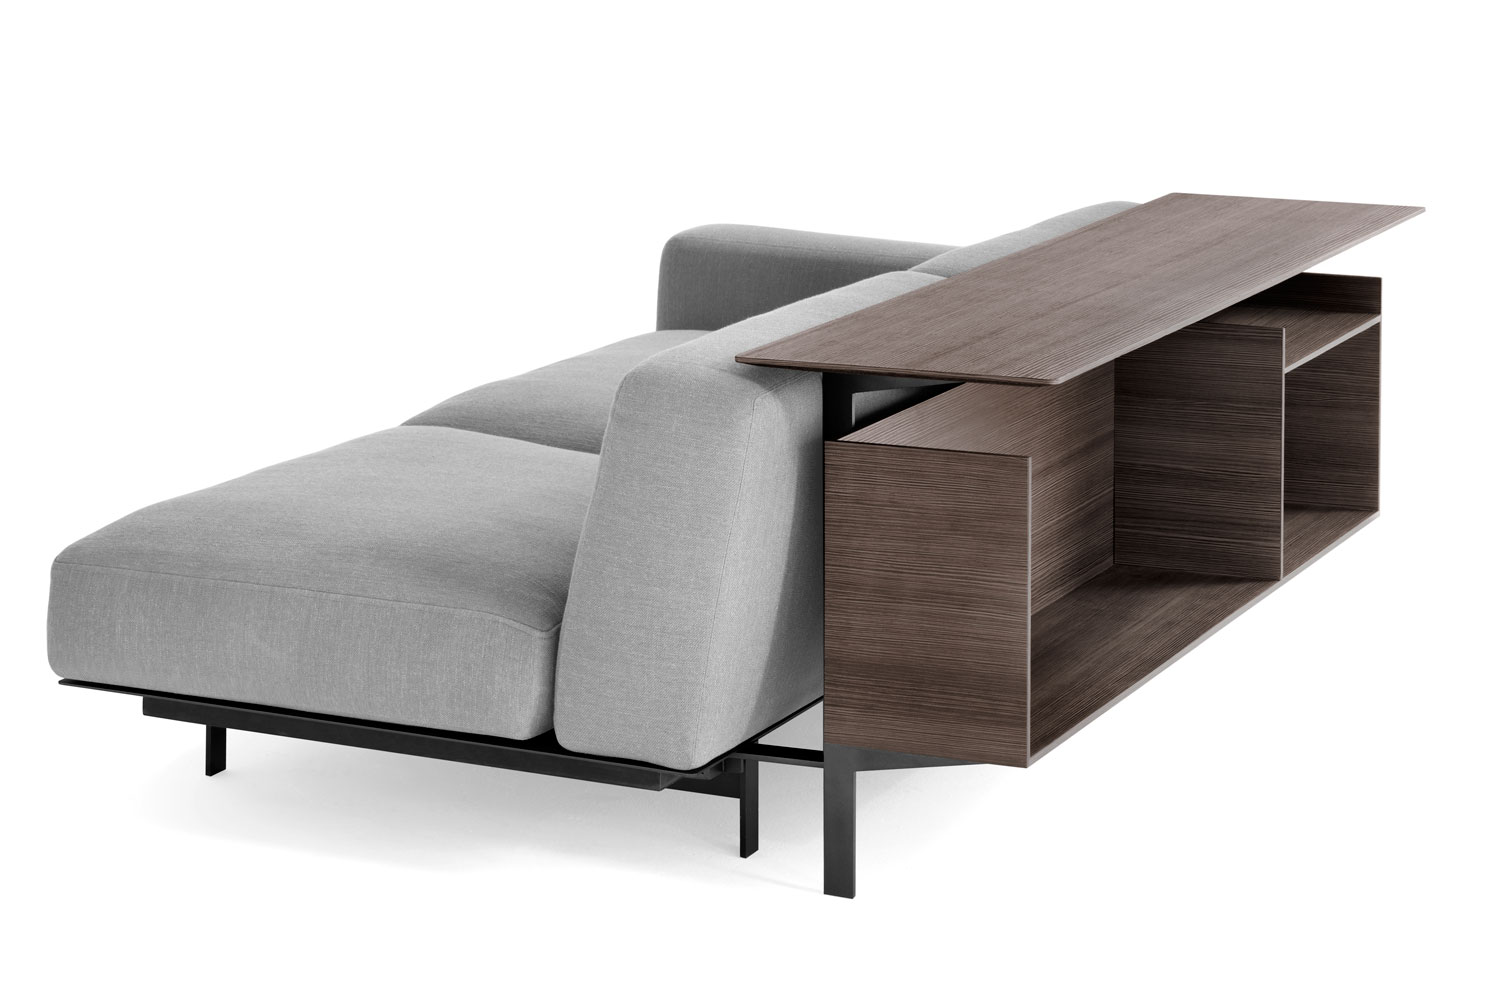 Best new furniture at salone del mobile 2015 for Mobile furniture